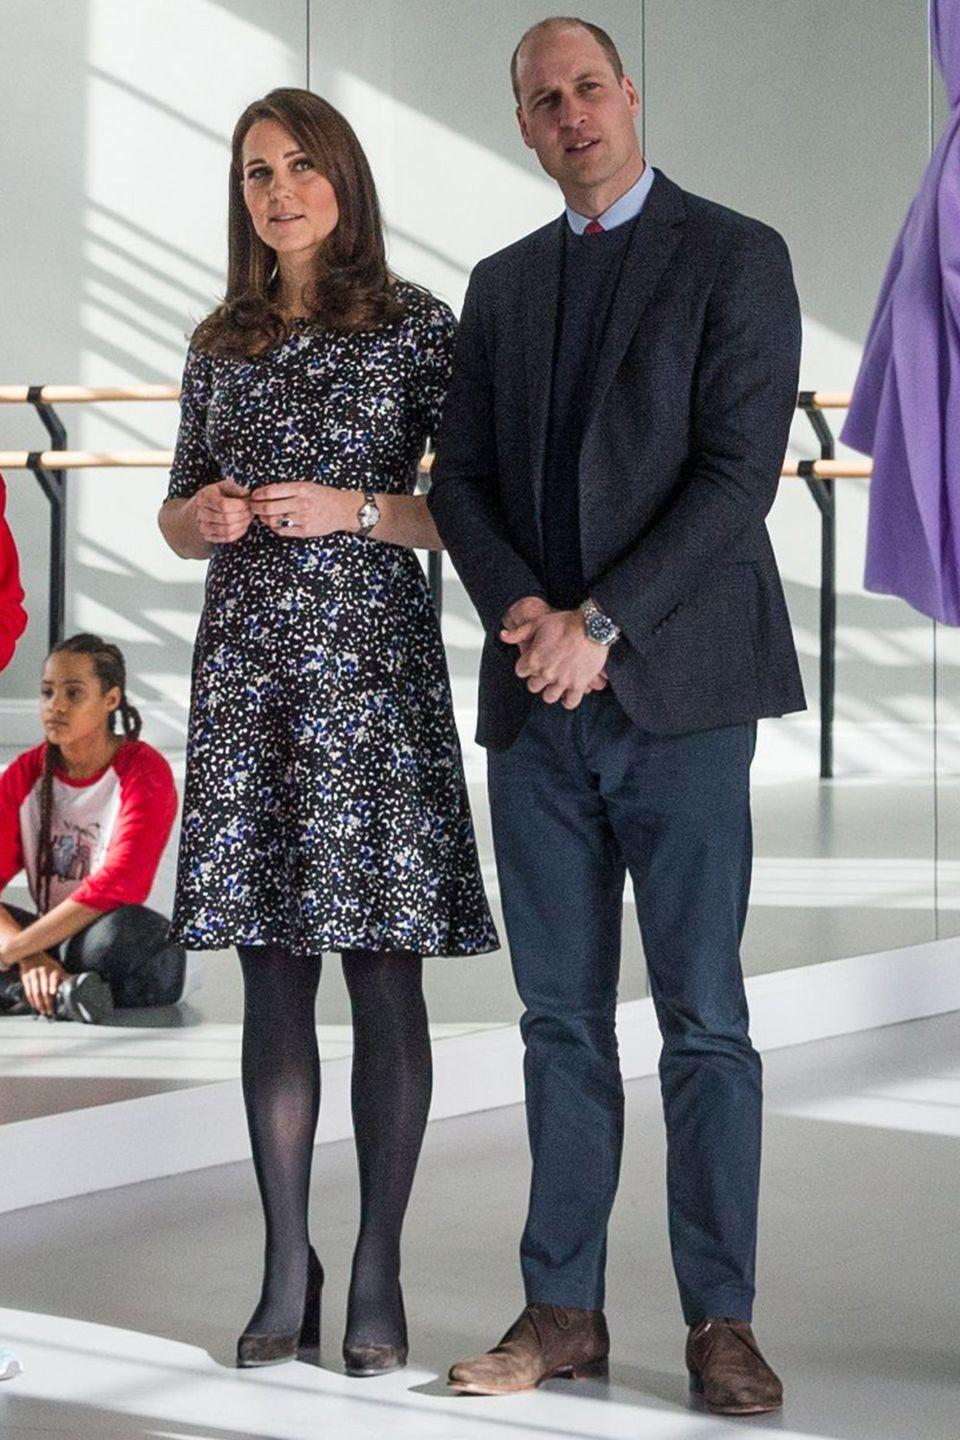 <p>Wearing a black-and-white printed long-sleeved dress, with silver jewelry, black tights, and heels while at the Fire Station Arts Centre in Sunderland with Prince William.</p>